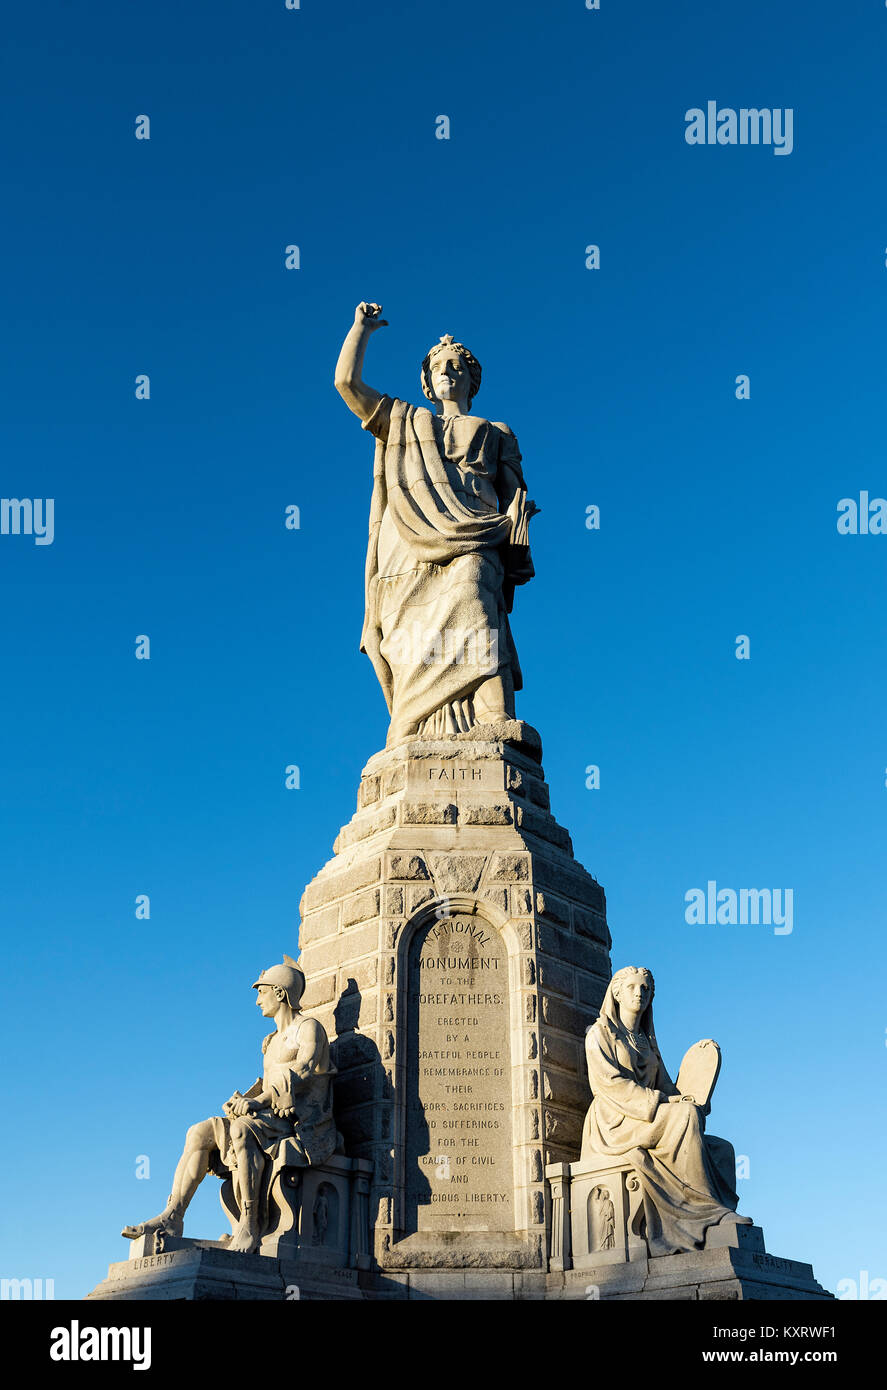 The National Monument to the Forefathers, formerly known as the Pilgrim Monument, commemorates the Mayflower Pilgrims, - Stock Image